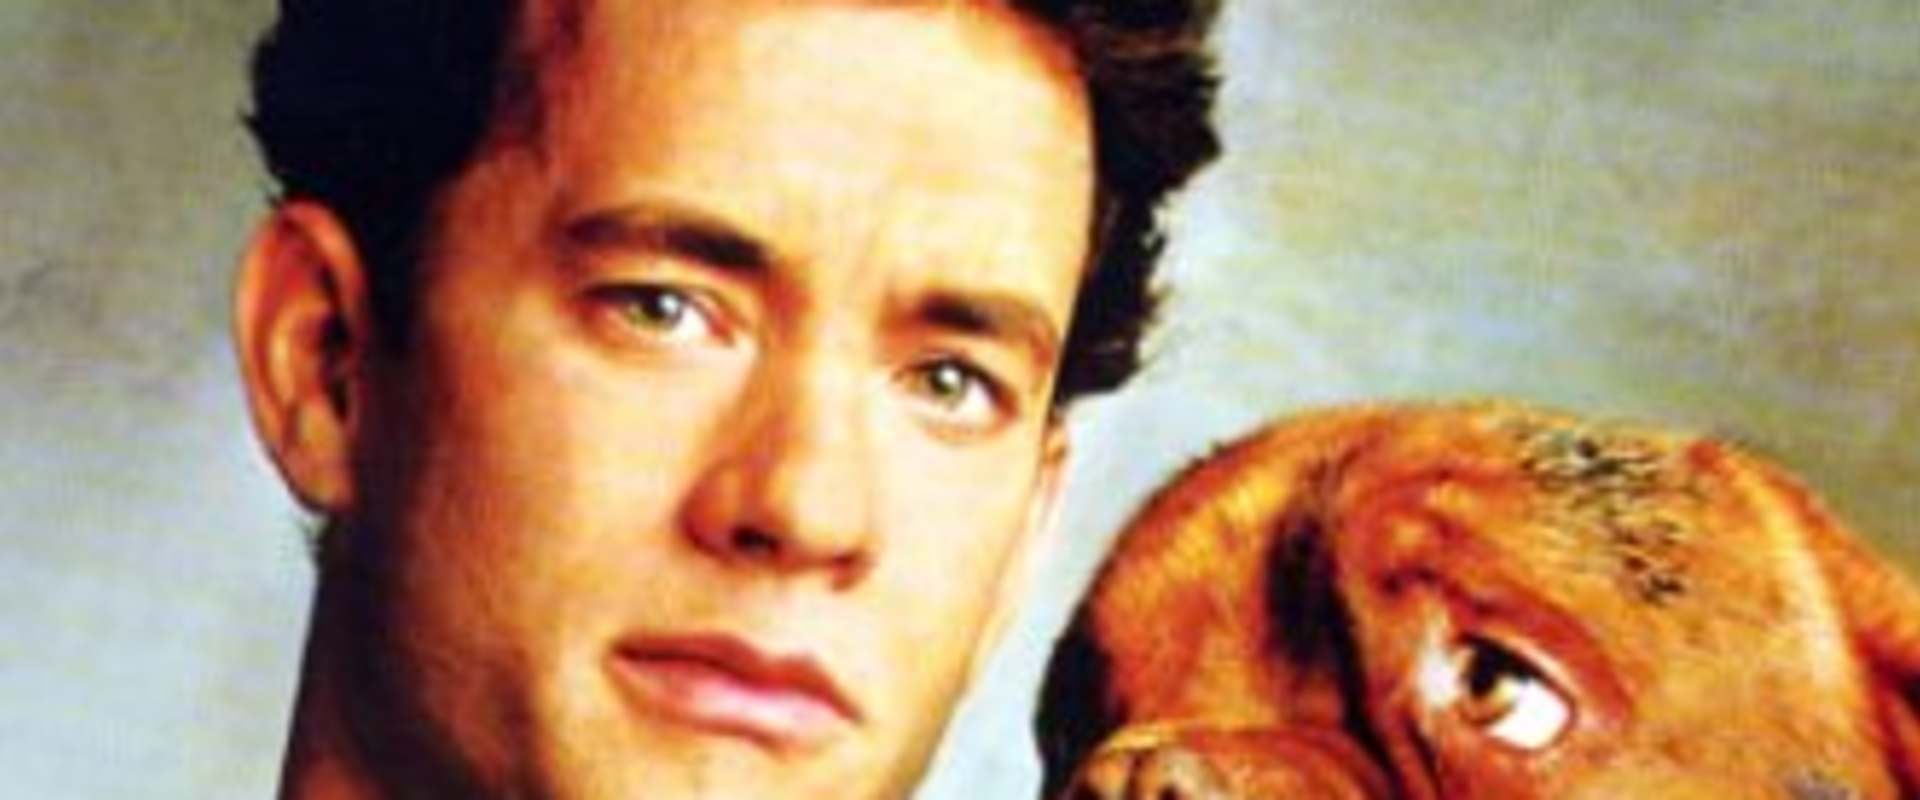 Turner & Hooch background 2